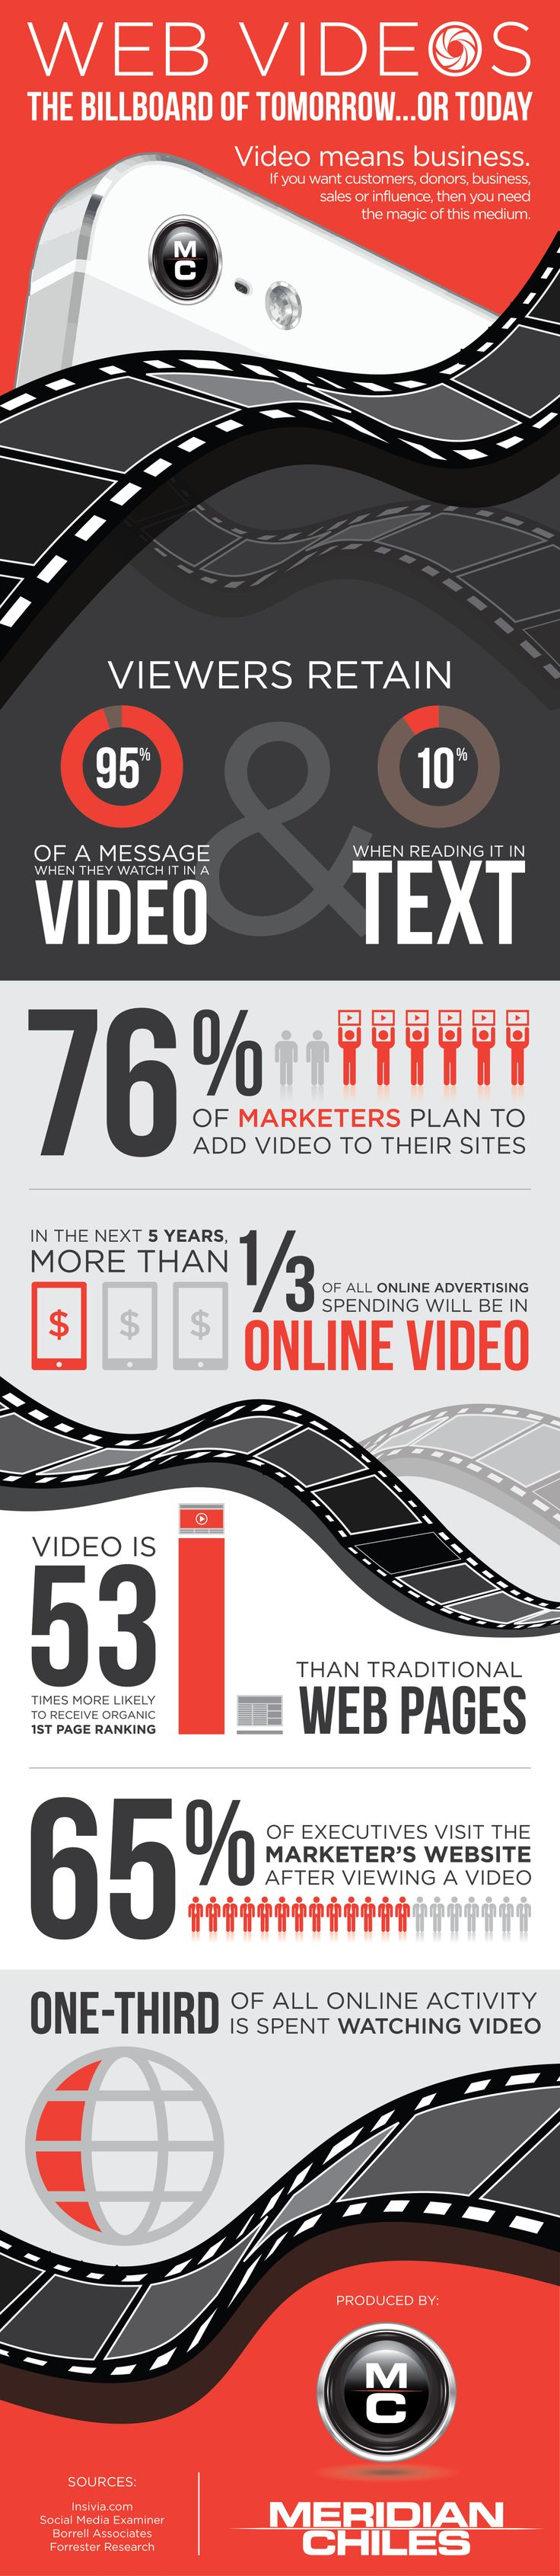 Video Means Business: Web Marketing, Web Videos, Iconic Infographics, Today Infographic